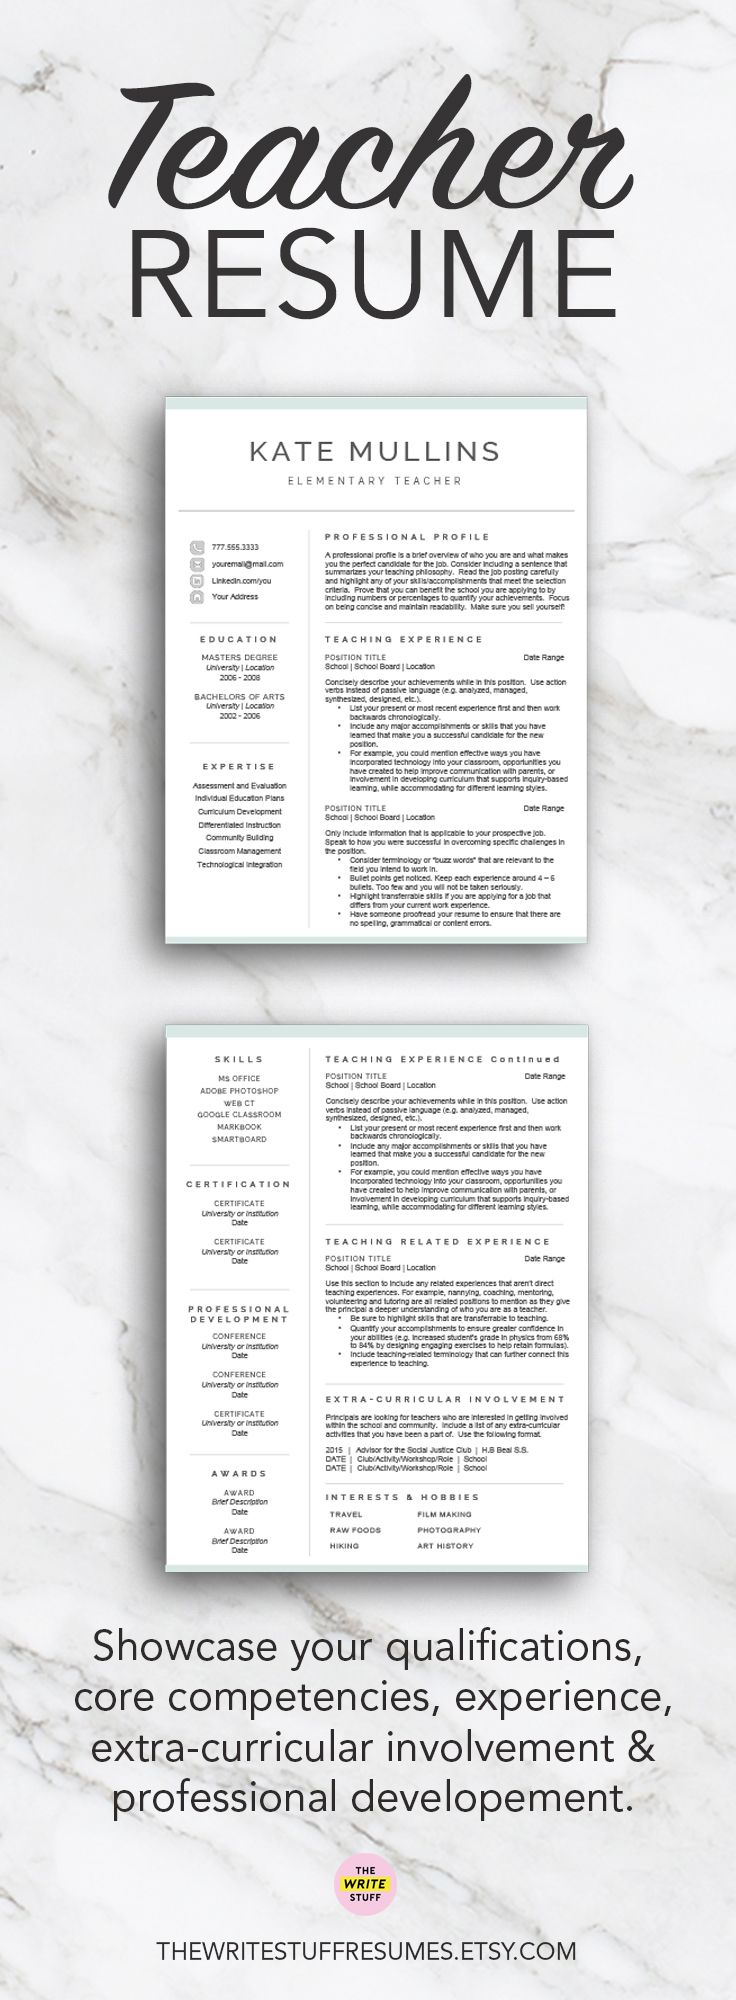 teacher resume template for word pages 1 2 and 3 page cv template resume for teachers educator cover letter instant download